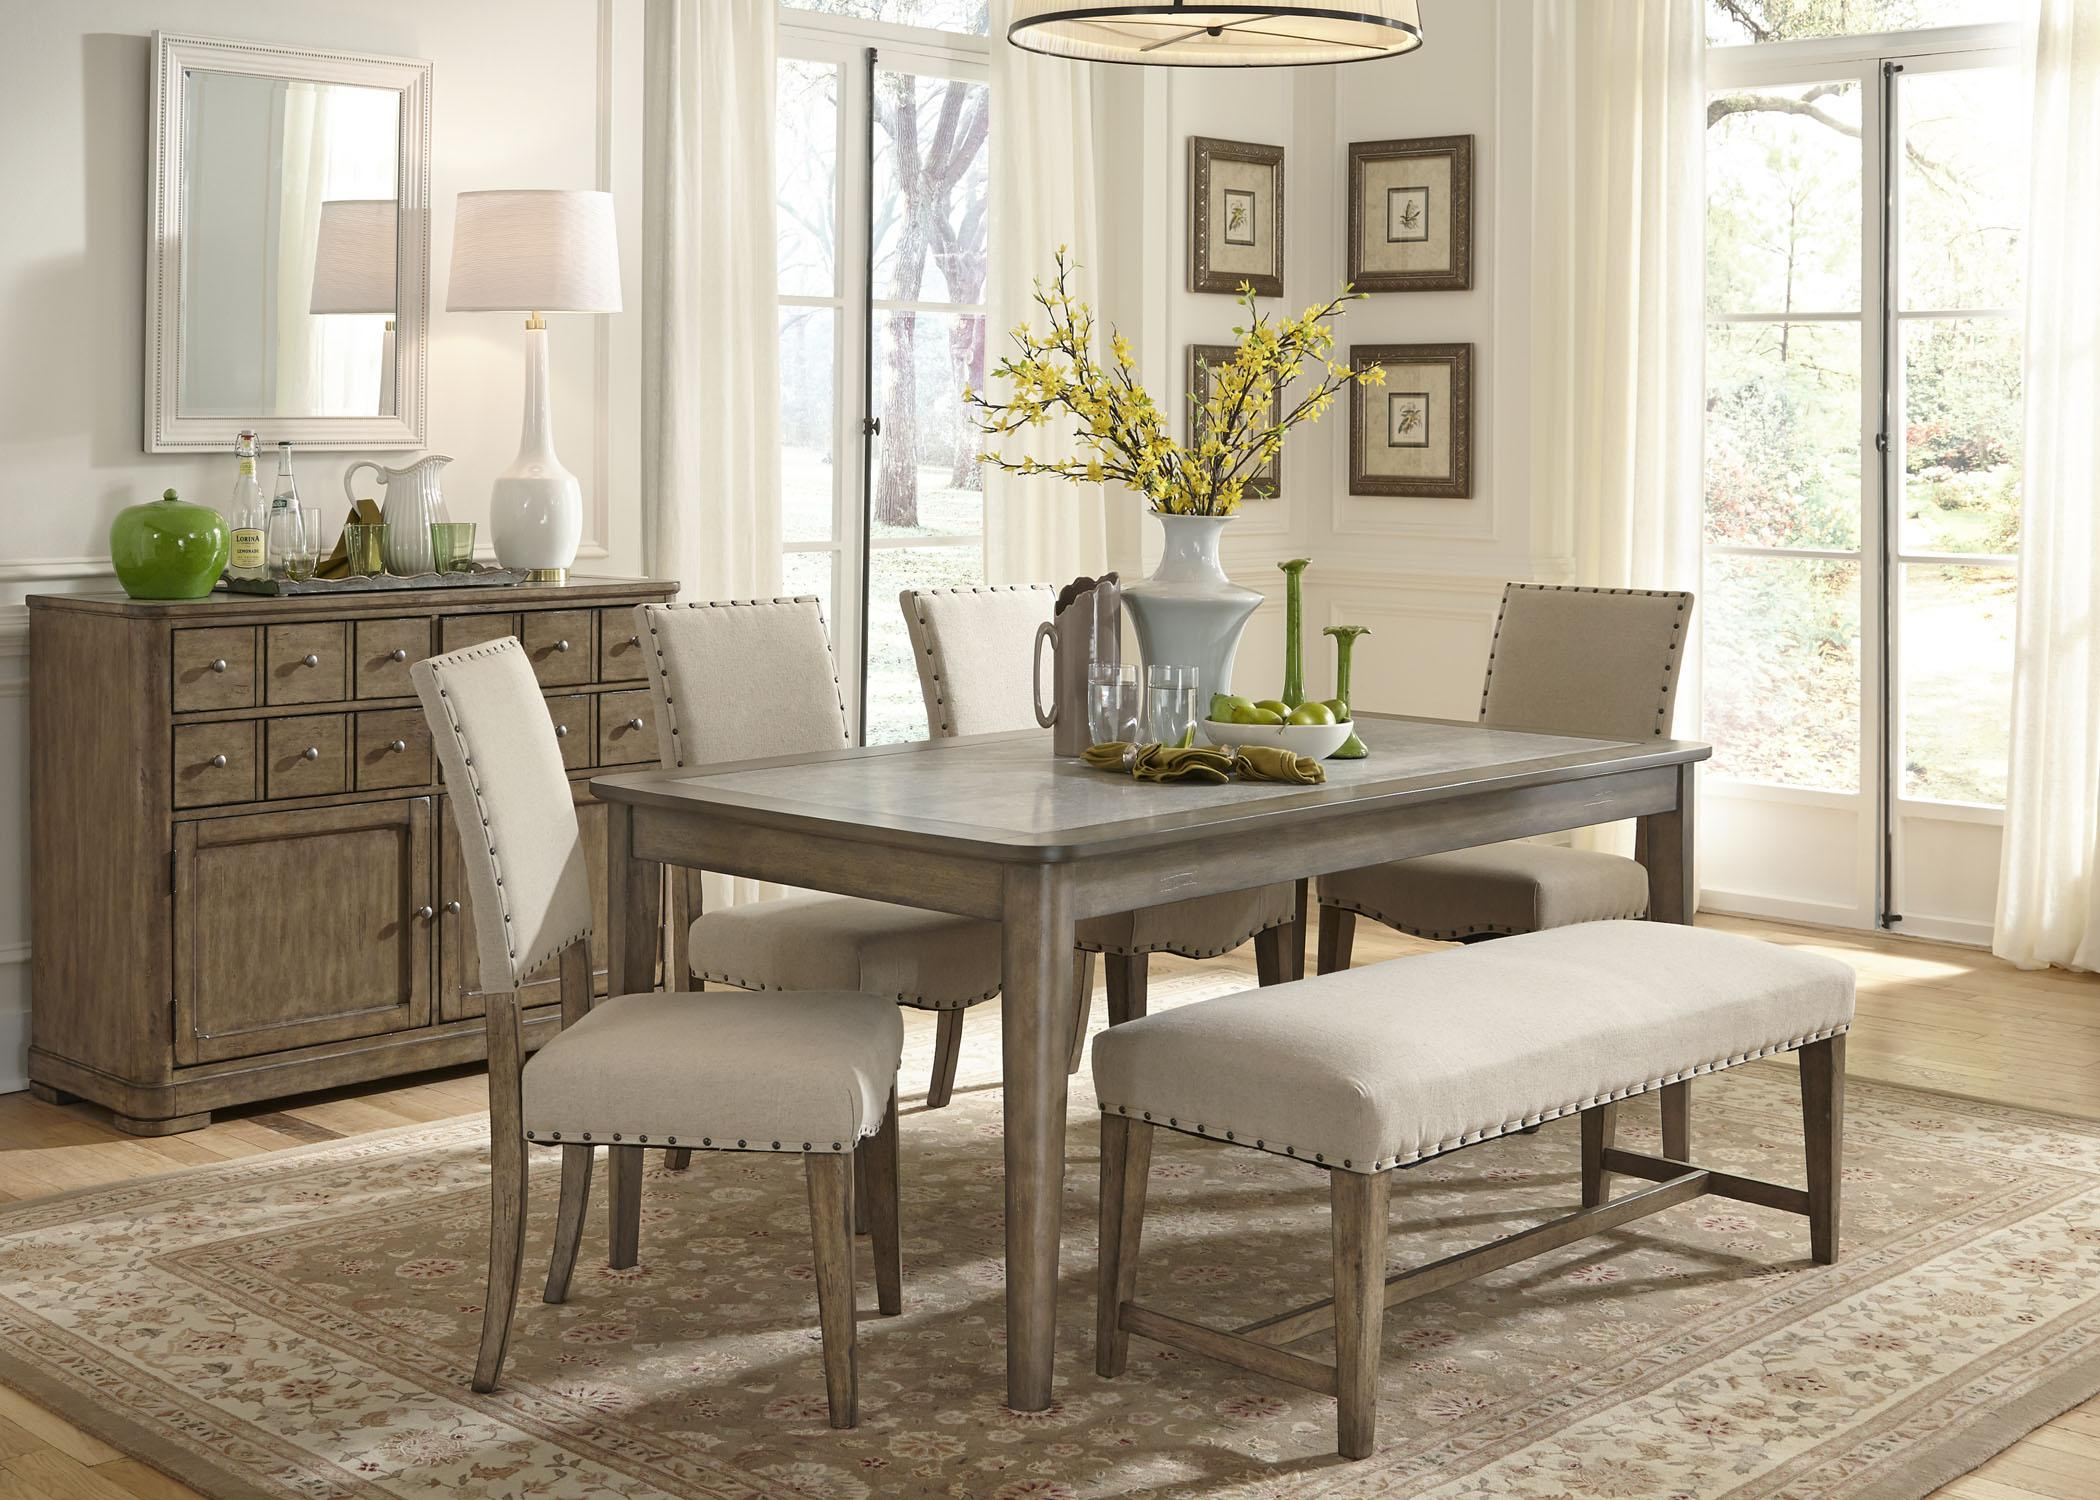 Rustic Casual 6 Piece Dining Table and Chairs Set with  : products2Flibertyfurniture2Fcolor2Fweatherford20645645 t38722B4xc6501s2Bb b2 from www.wolffurniture.com size 2100 x 1500 jpeg 397kB